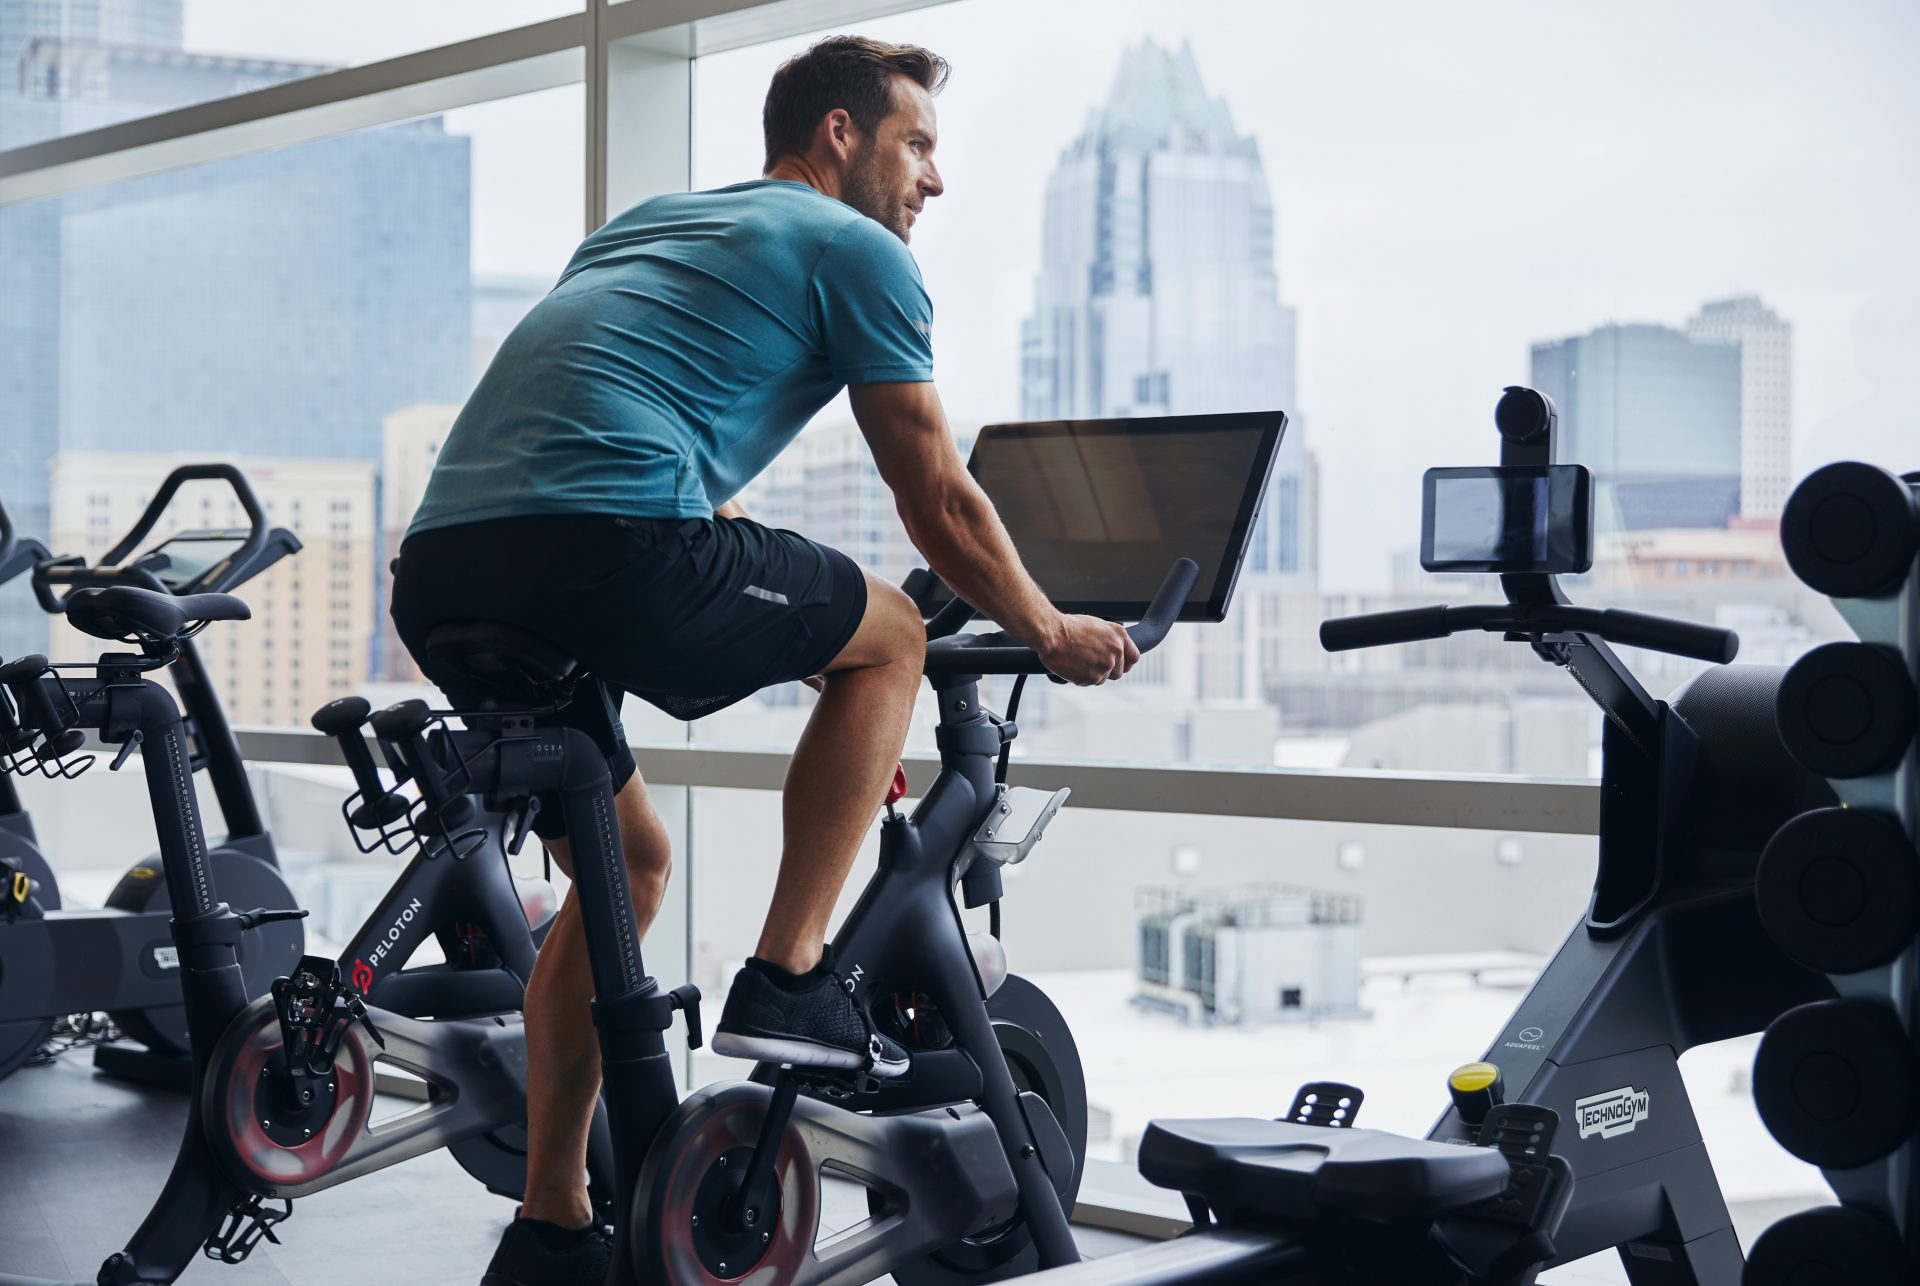 Man cycling on Peleton exercise bike looking out large window with view of downtown buildings